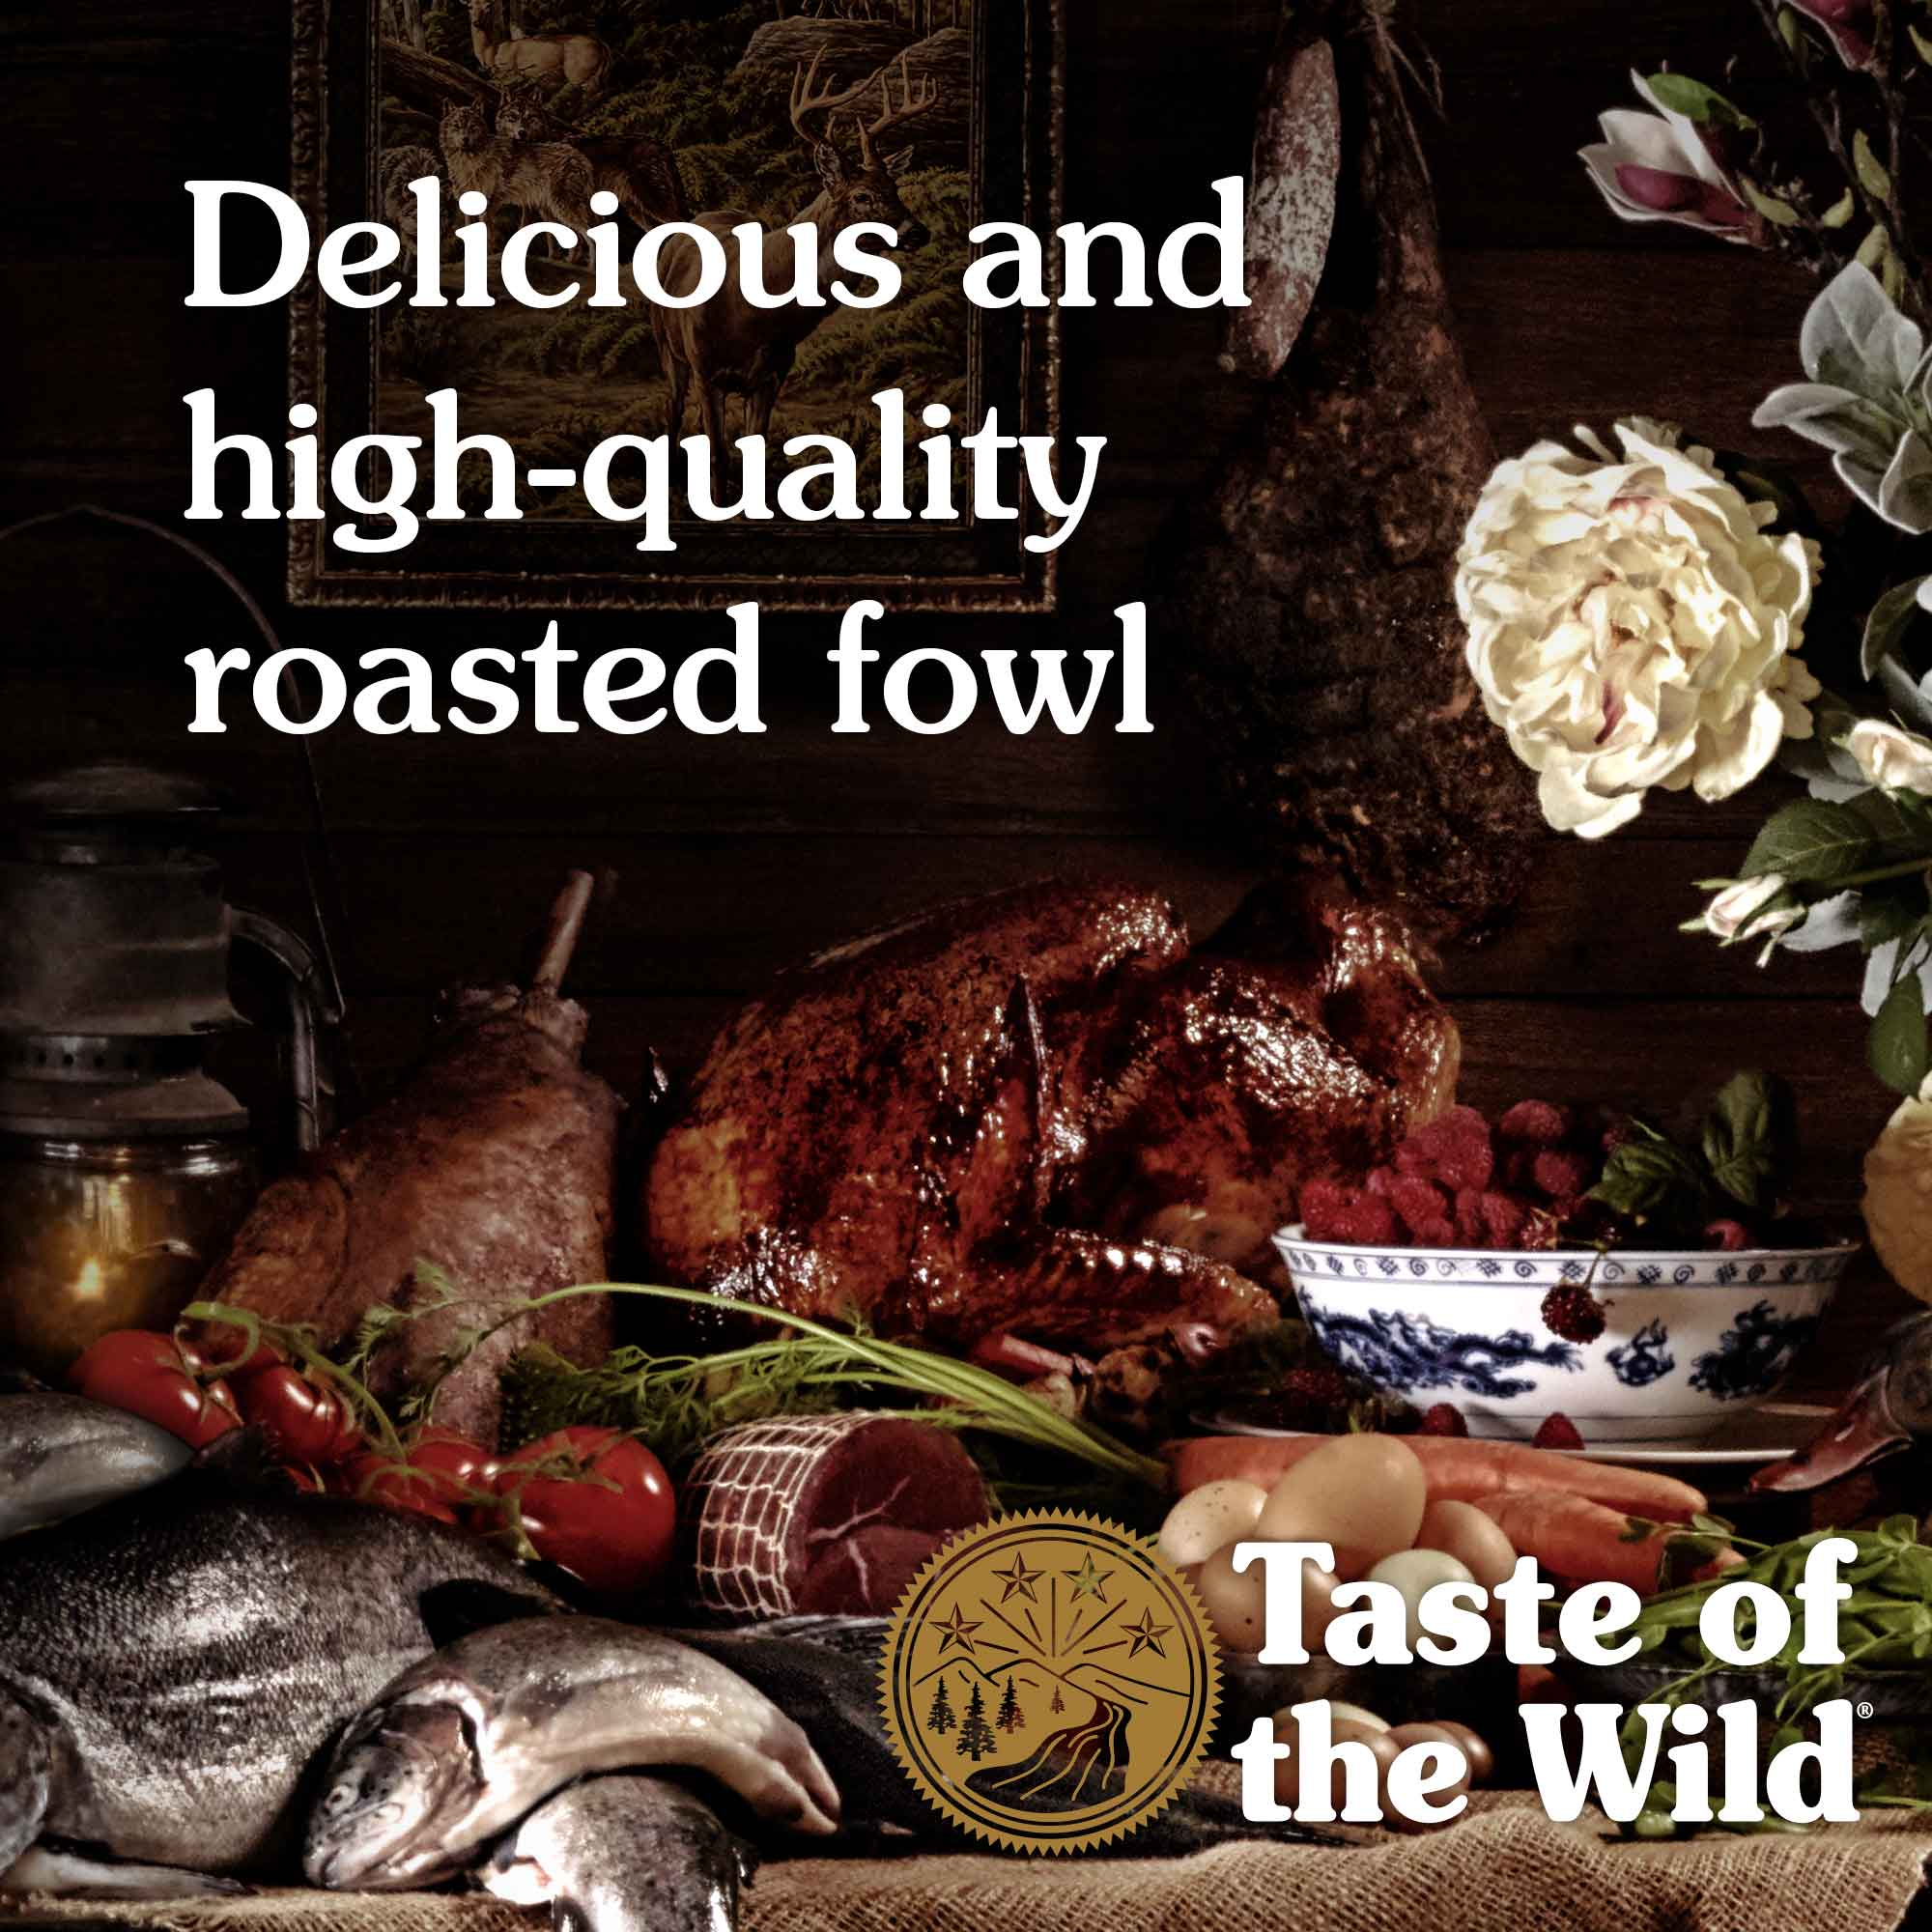 Delicious and high-quality roasted fowl